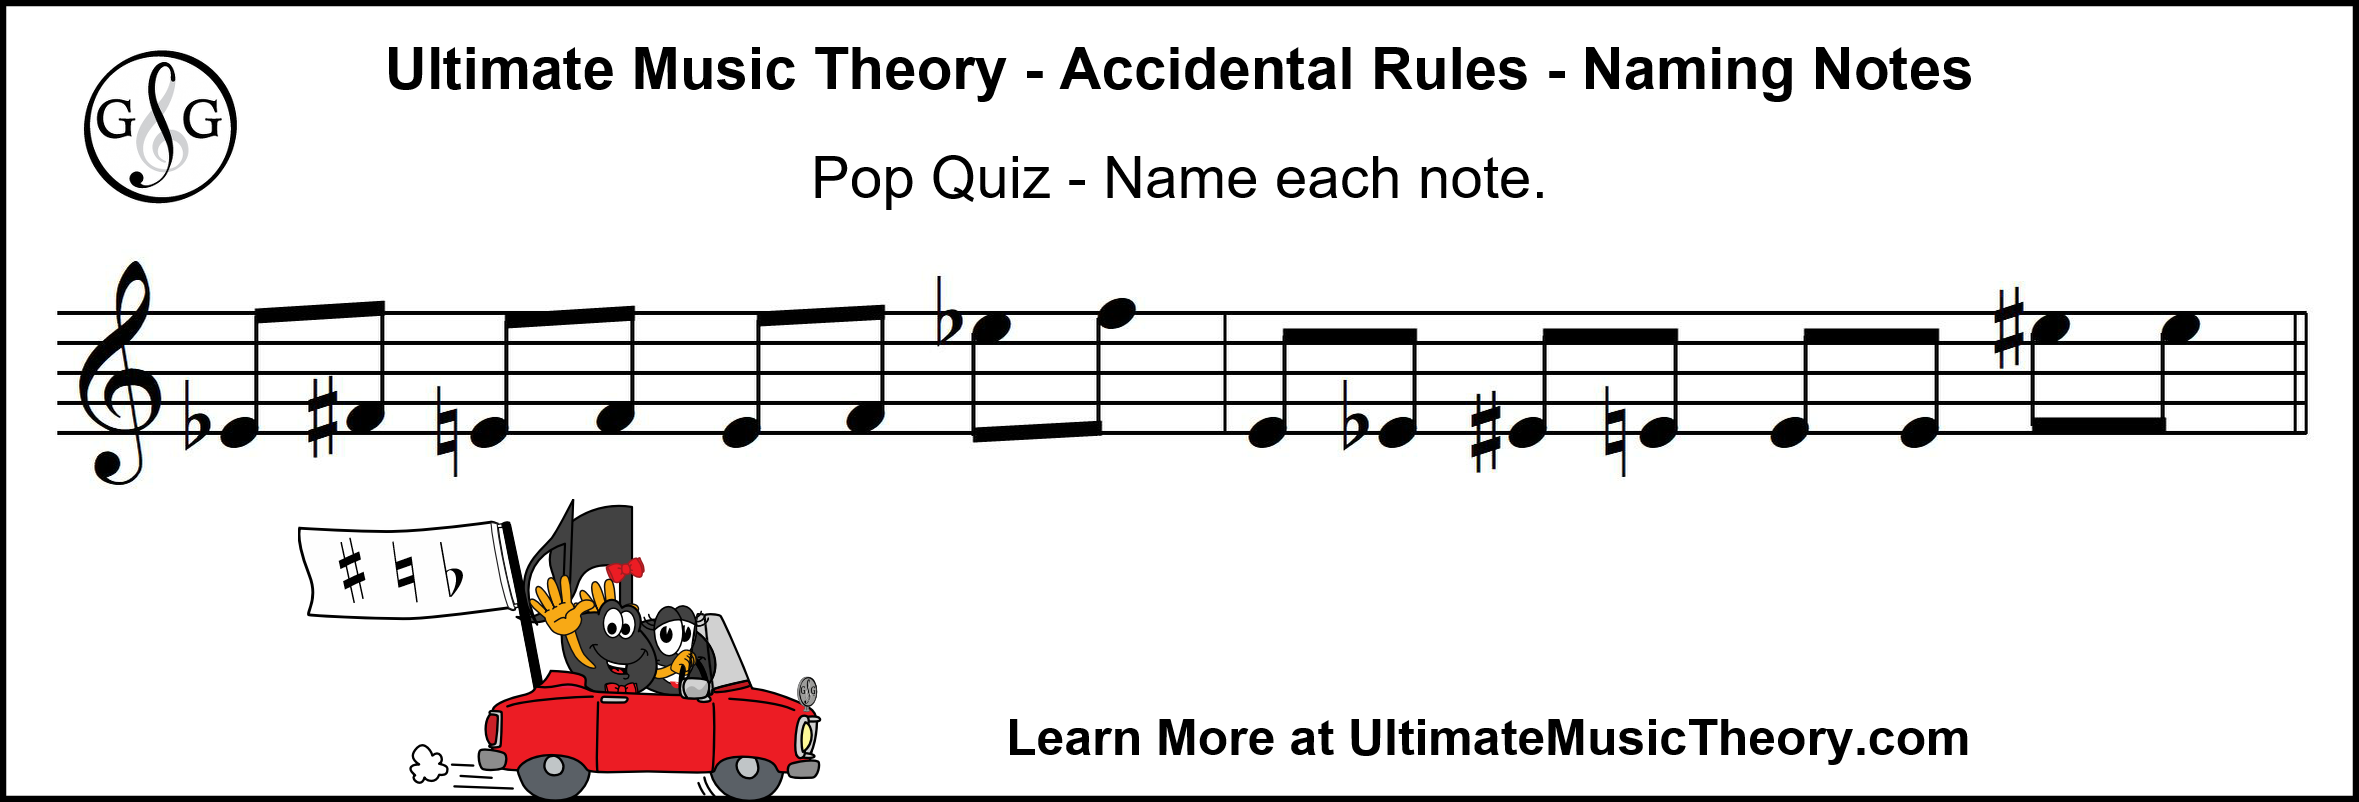 UMT Naming Notes with Accidentals Pop Quiz